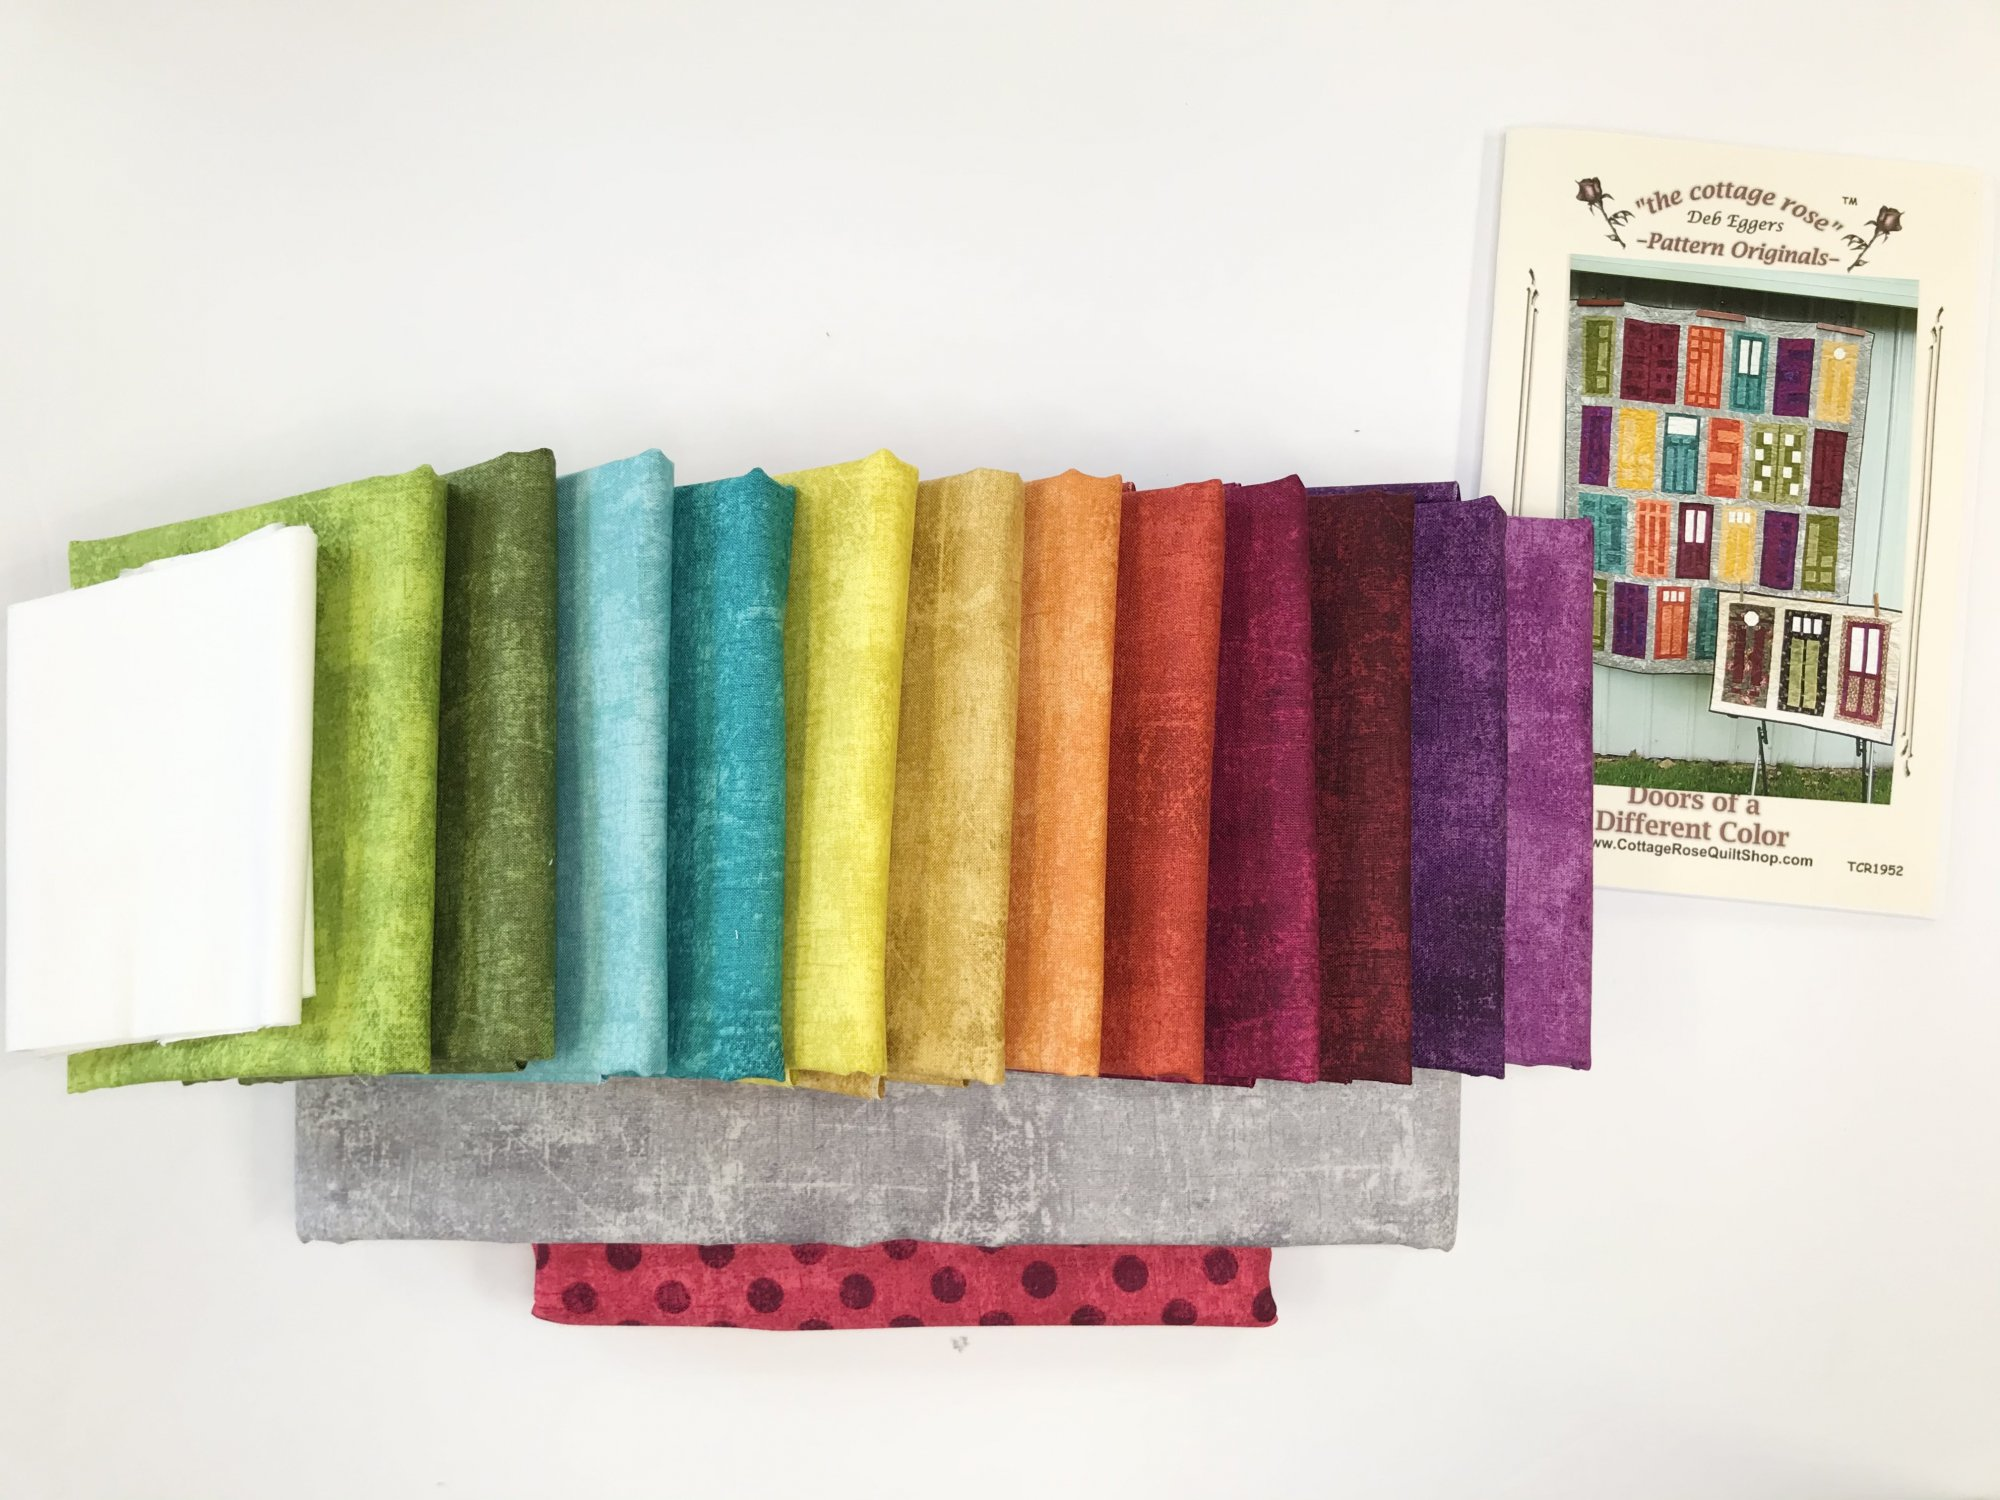 Doors of a Different Color - Quilt Kit and Pattern